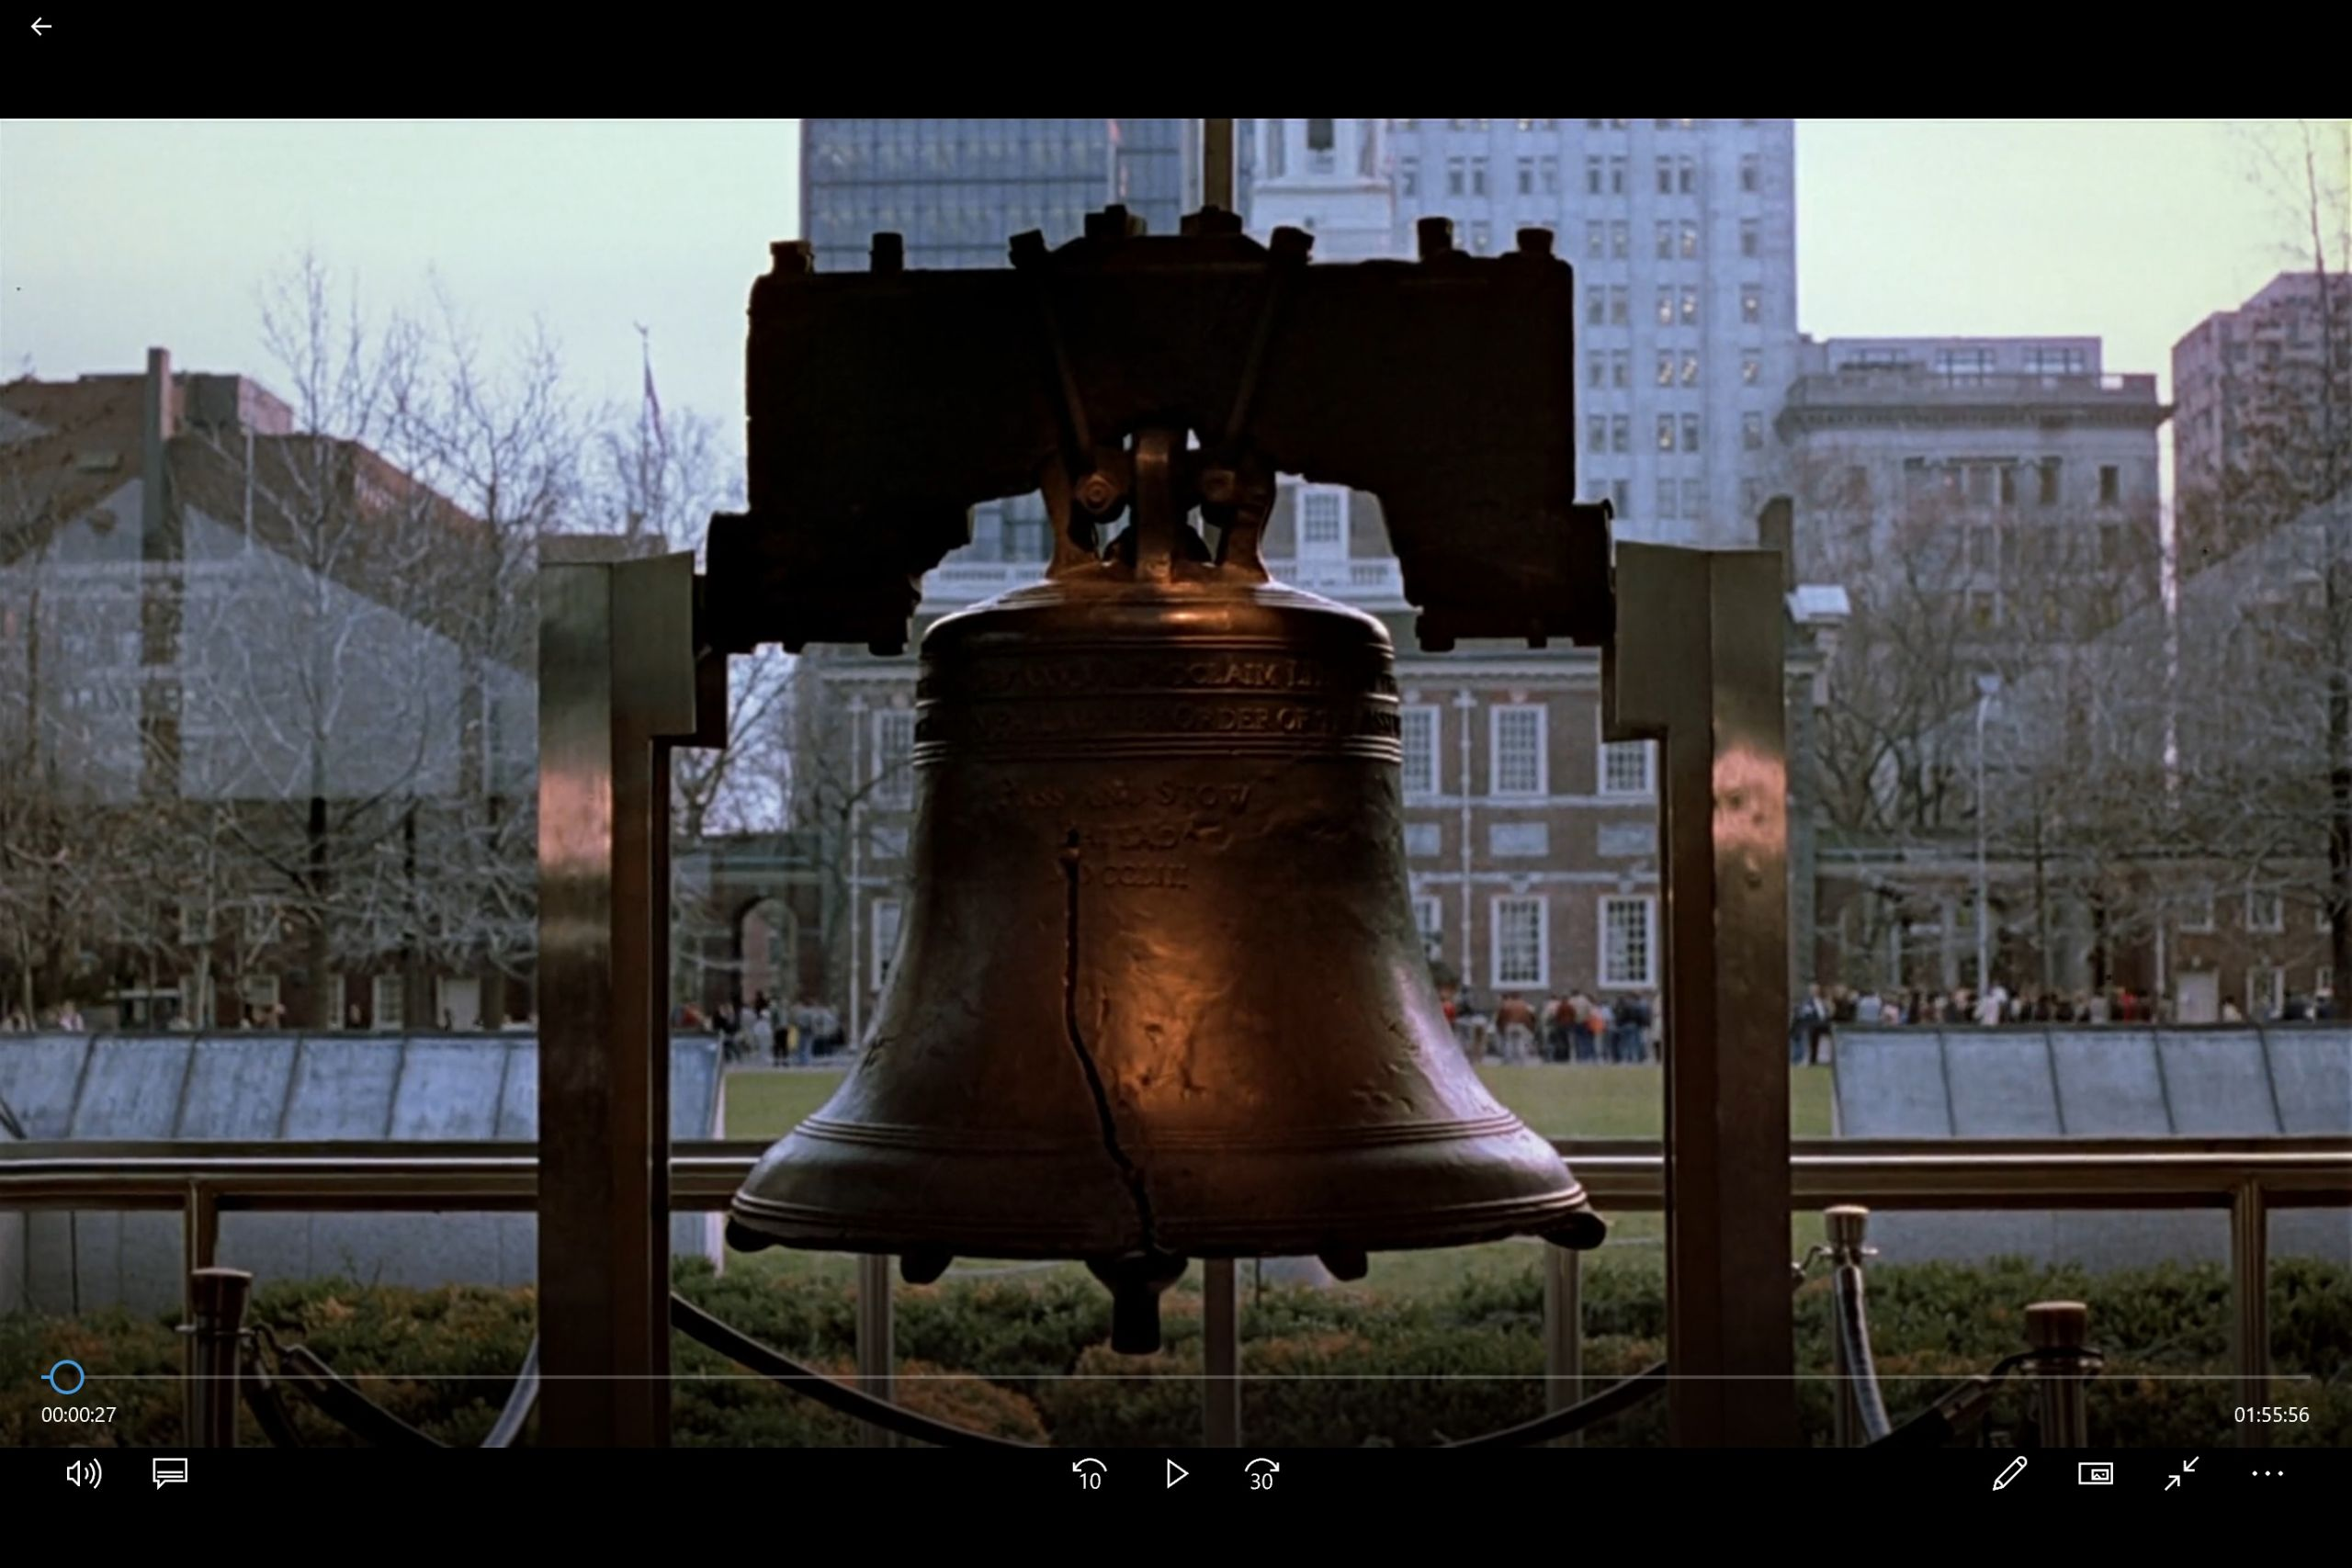 liberty bell philadelphia trading places